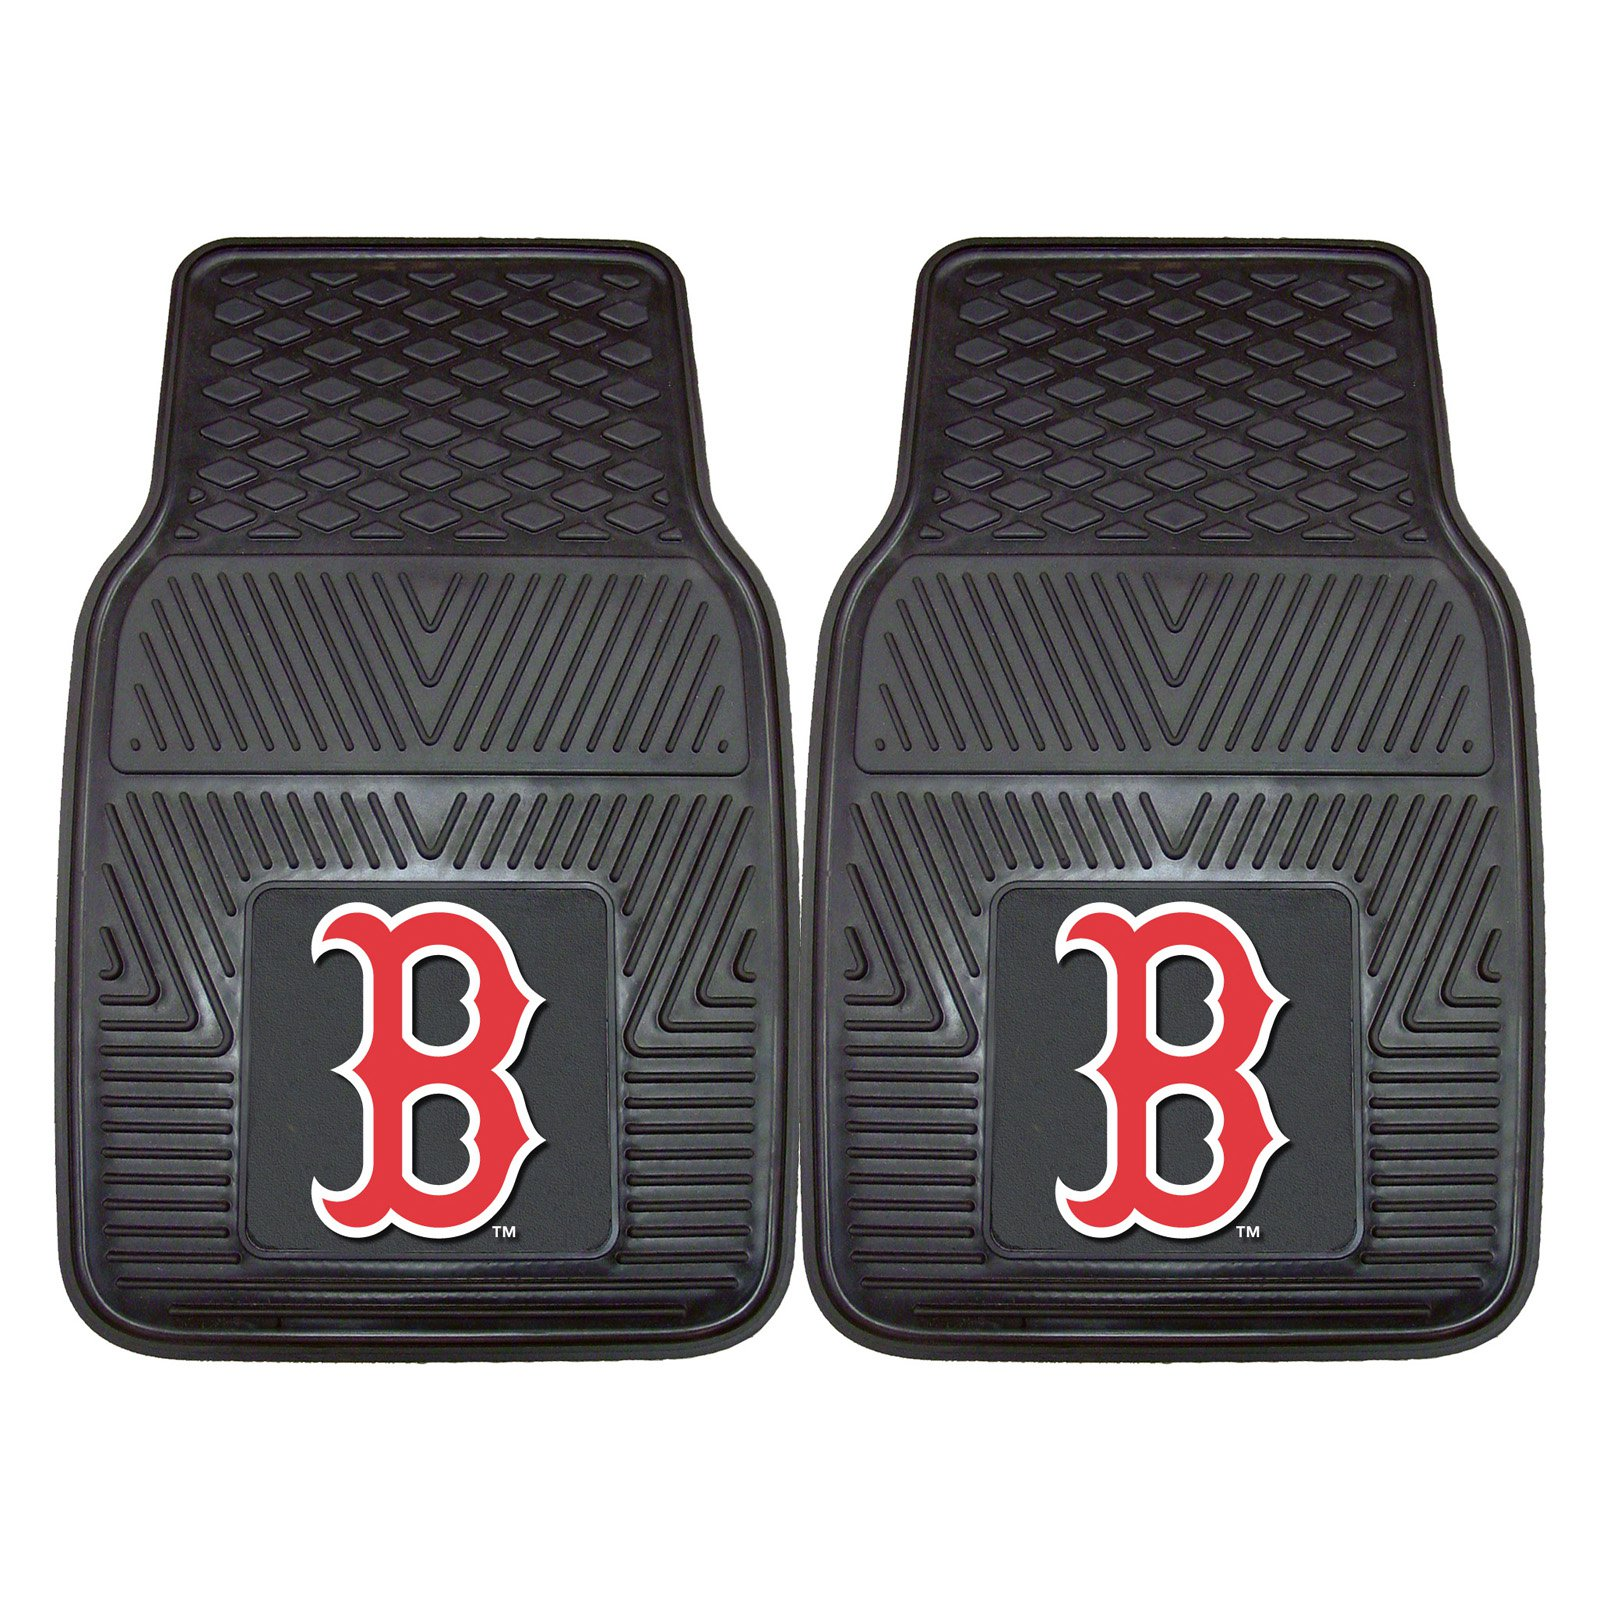 Fanmats MLB 18 x 27 in. Vinyl Car Mat